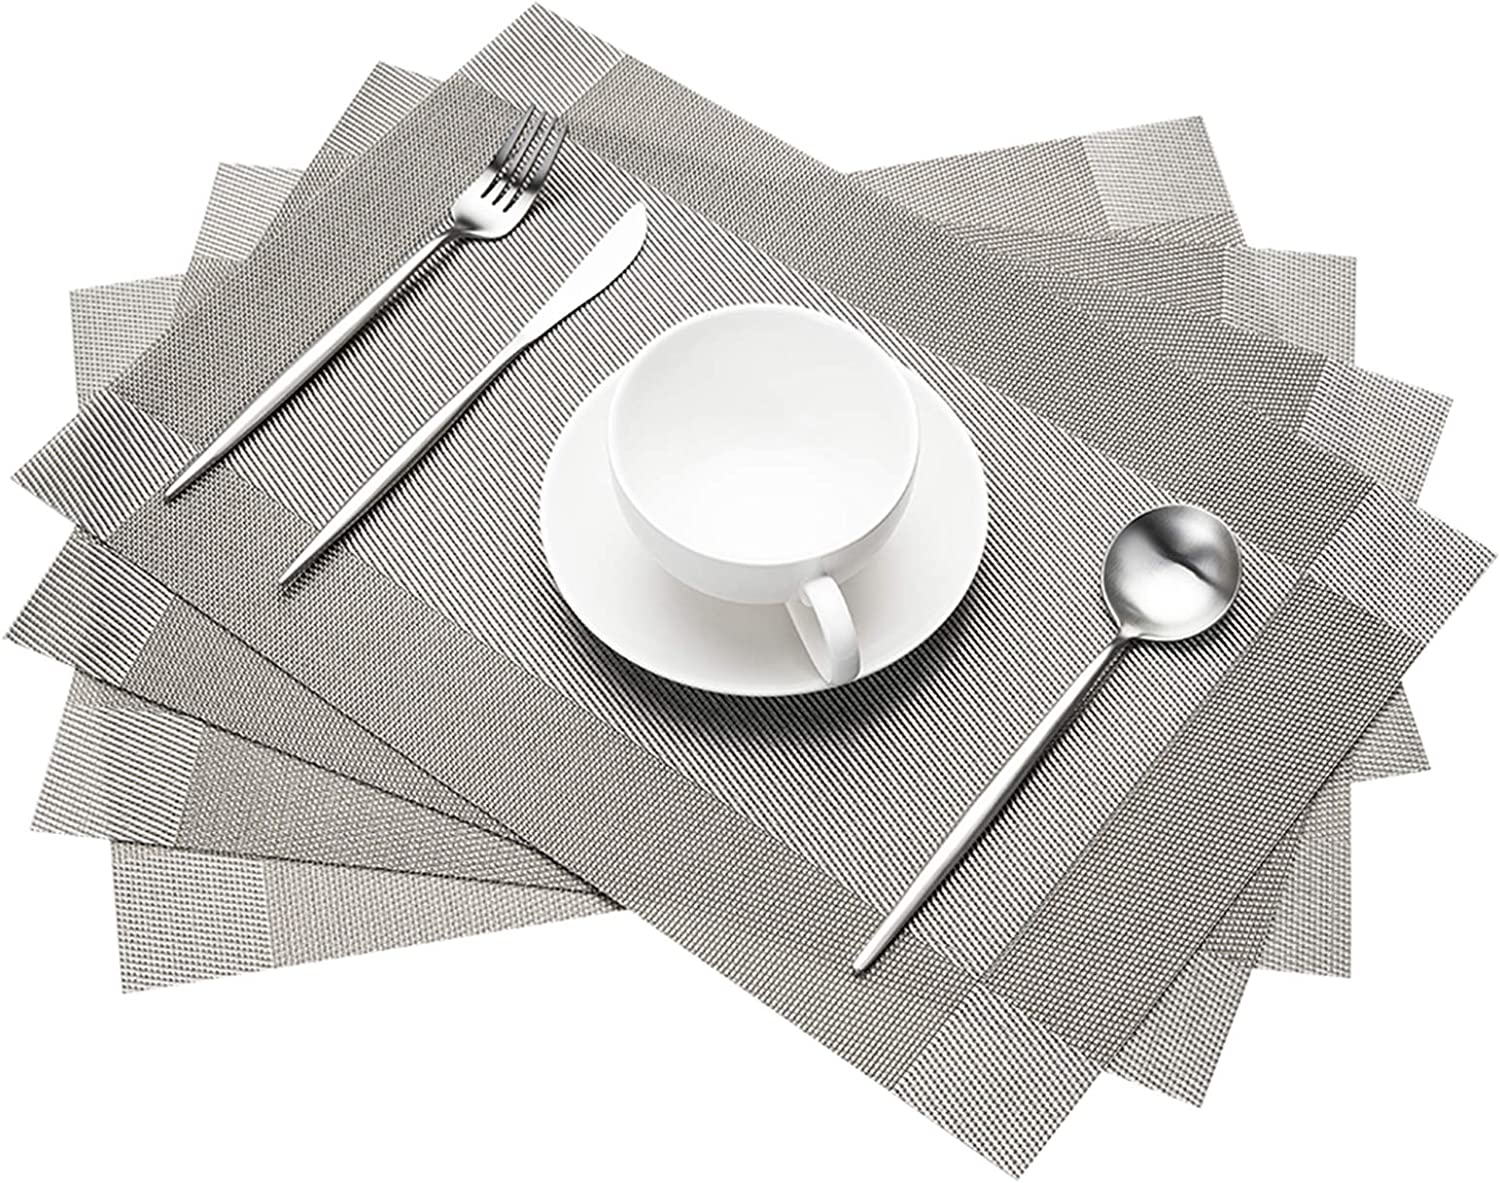 STELLAIRE CHERN Placemats for Dining Table Washable Woven Vinyl PVC Placemats Non-Slip Heat Resistant Kitchen Table Mats Set of 4 (Silver Grey)